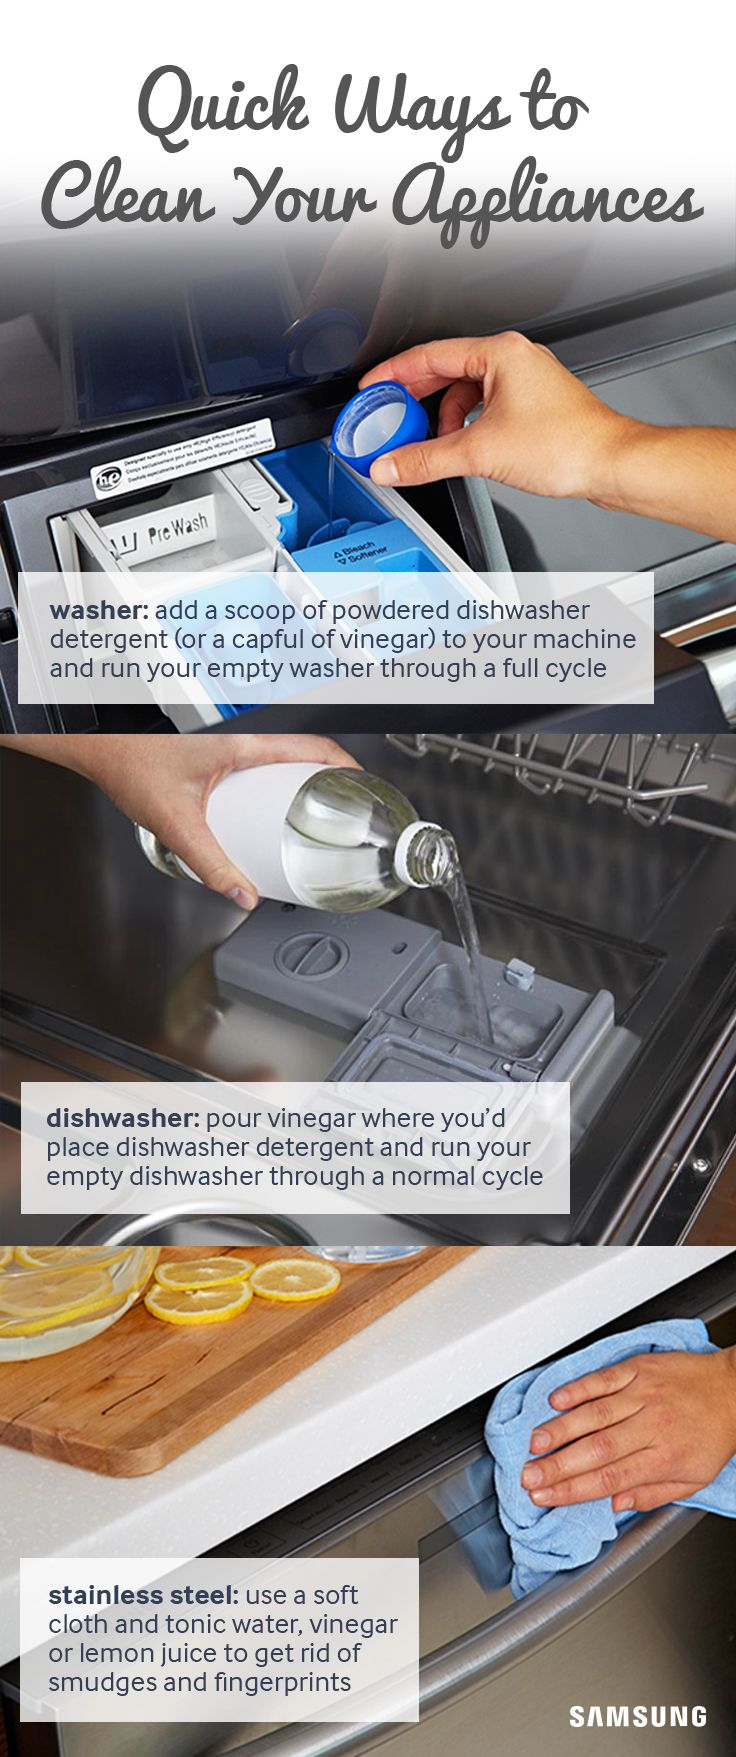 Learn how to conquer household chores like polishing stainless steel appliances and removing odors from washers with these helpful tips from the experts at Samsung.